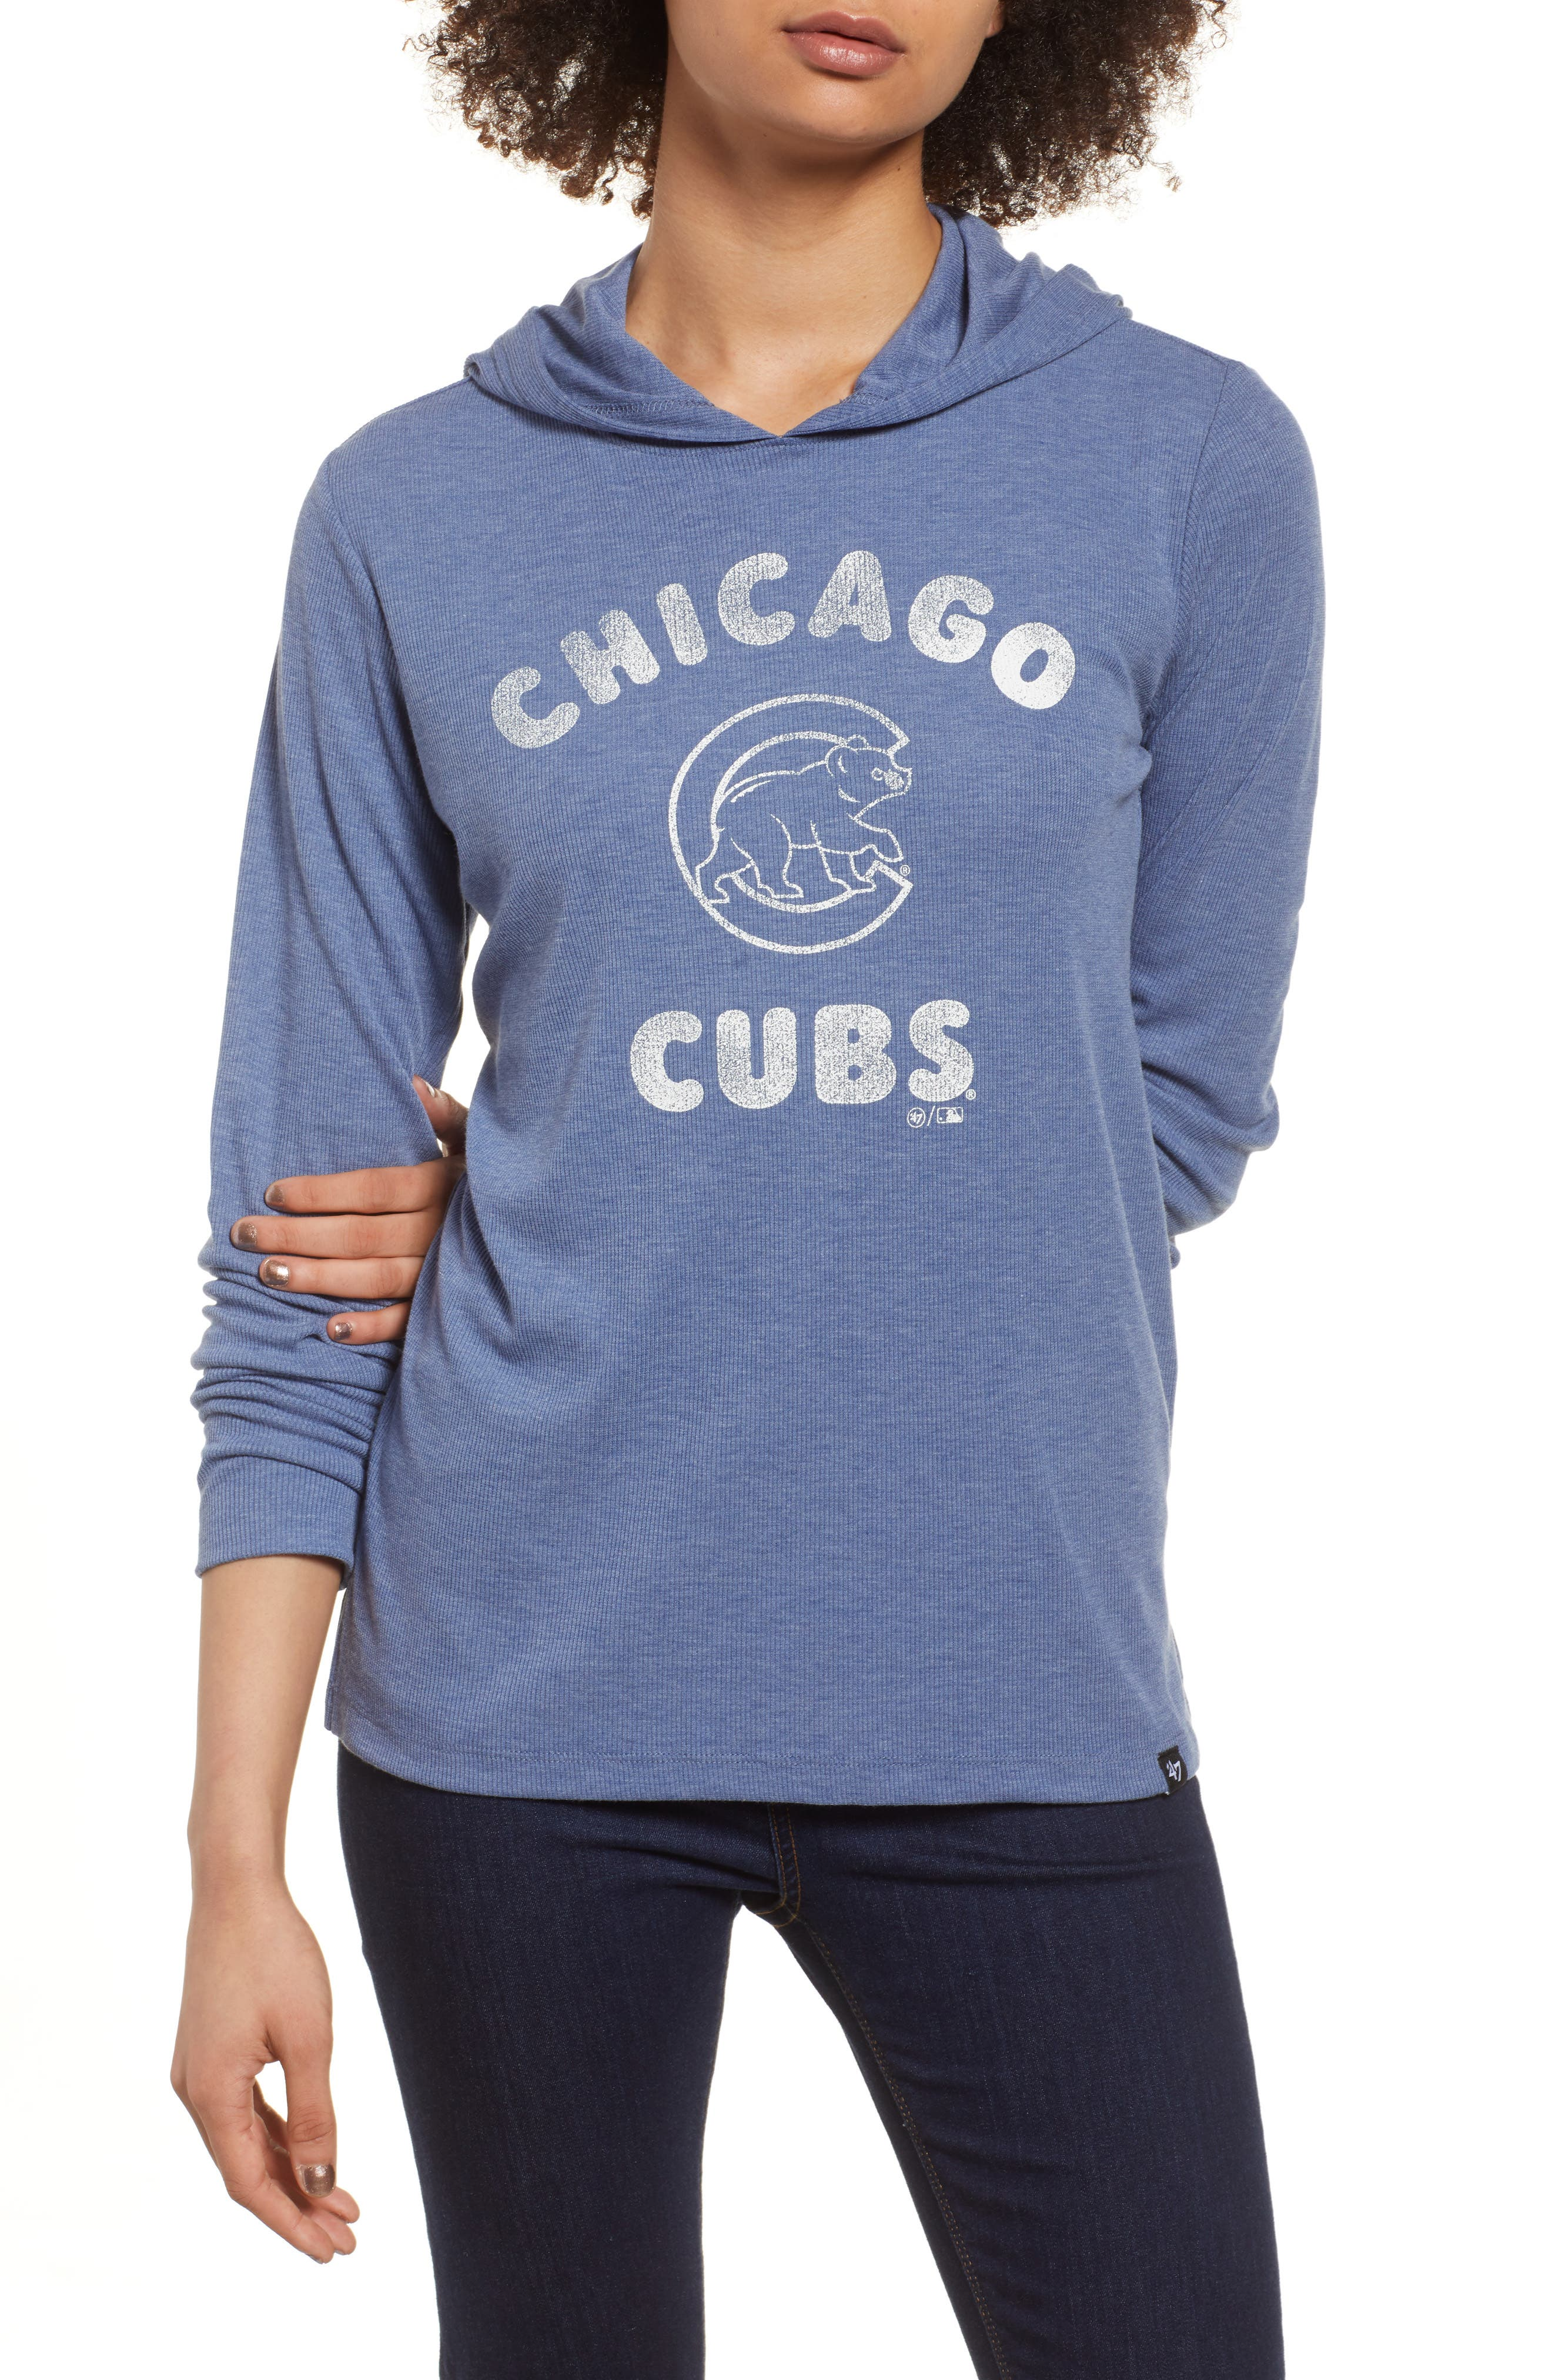 Campbell Chicago Cubs Rib Knit Hoodie,                             Main thumbnail 1, color,                             Bleacher Blue